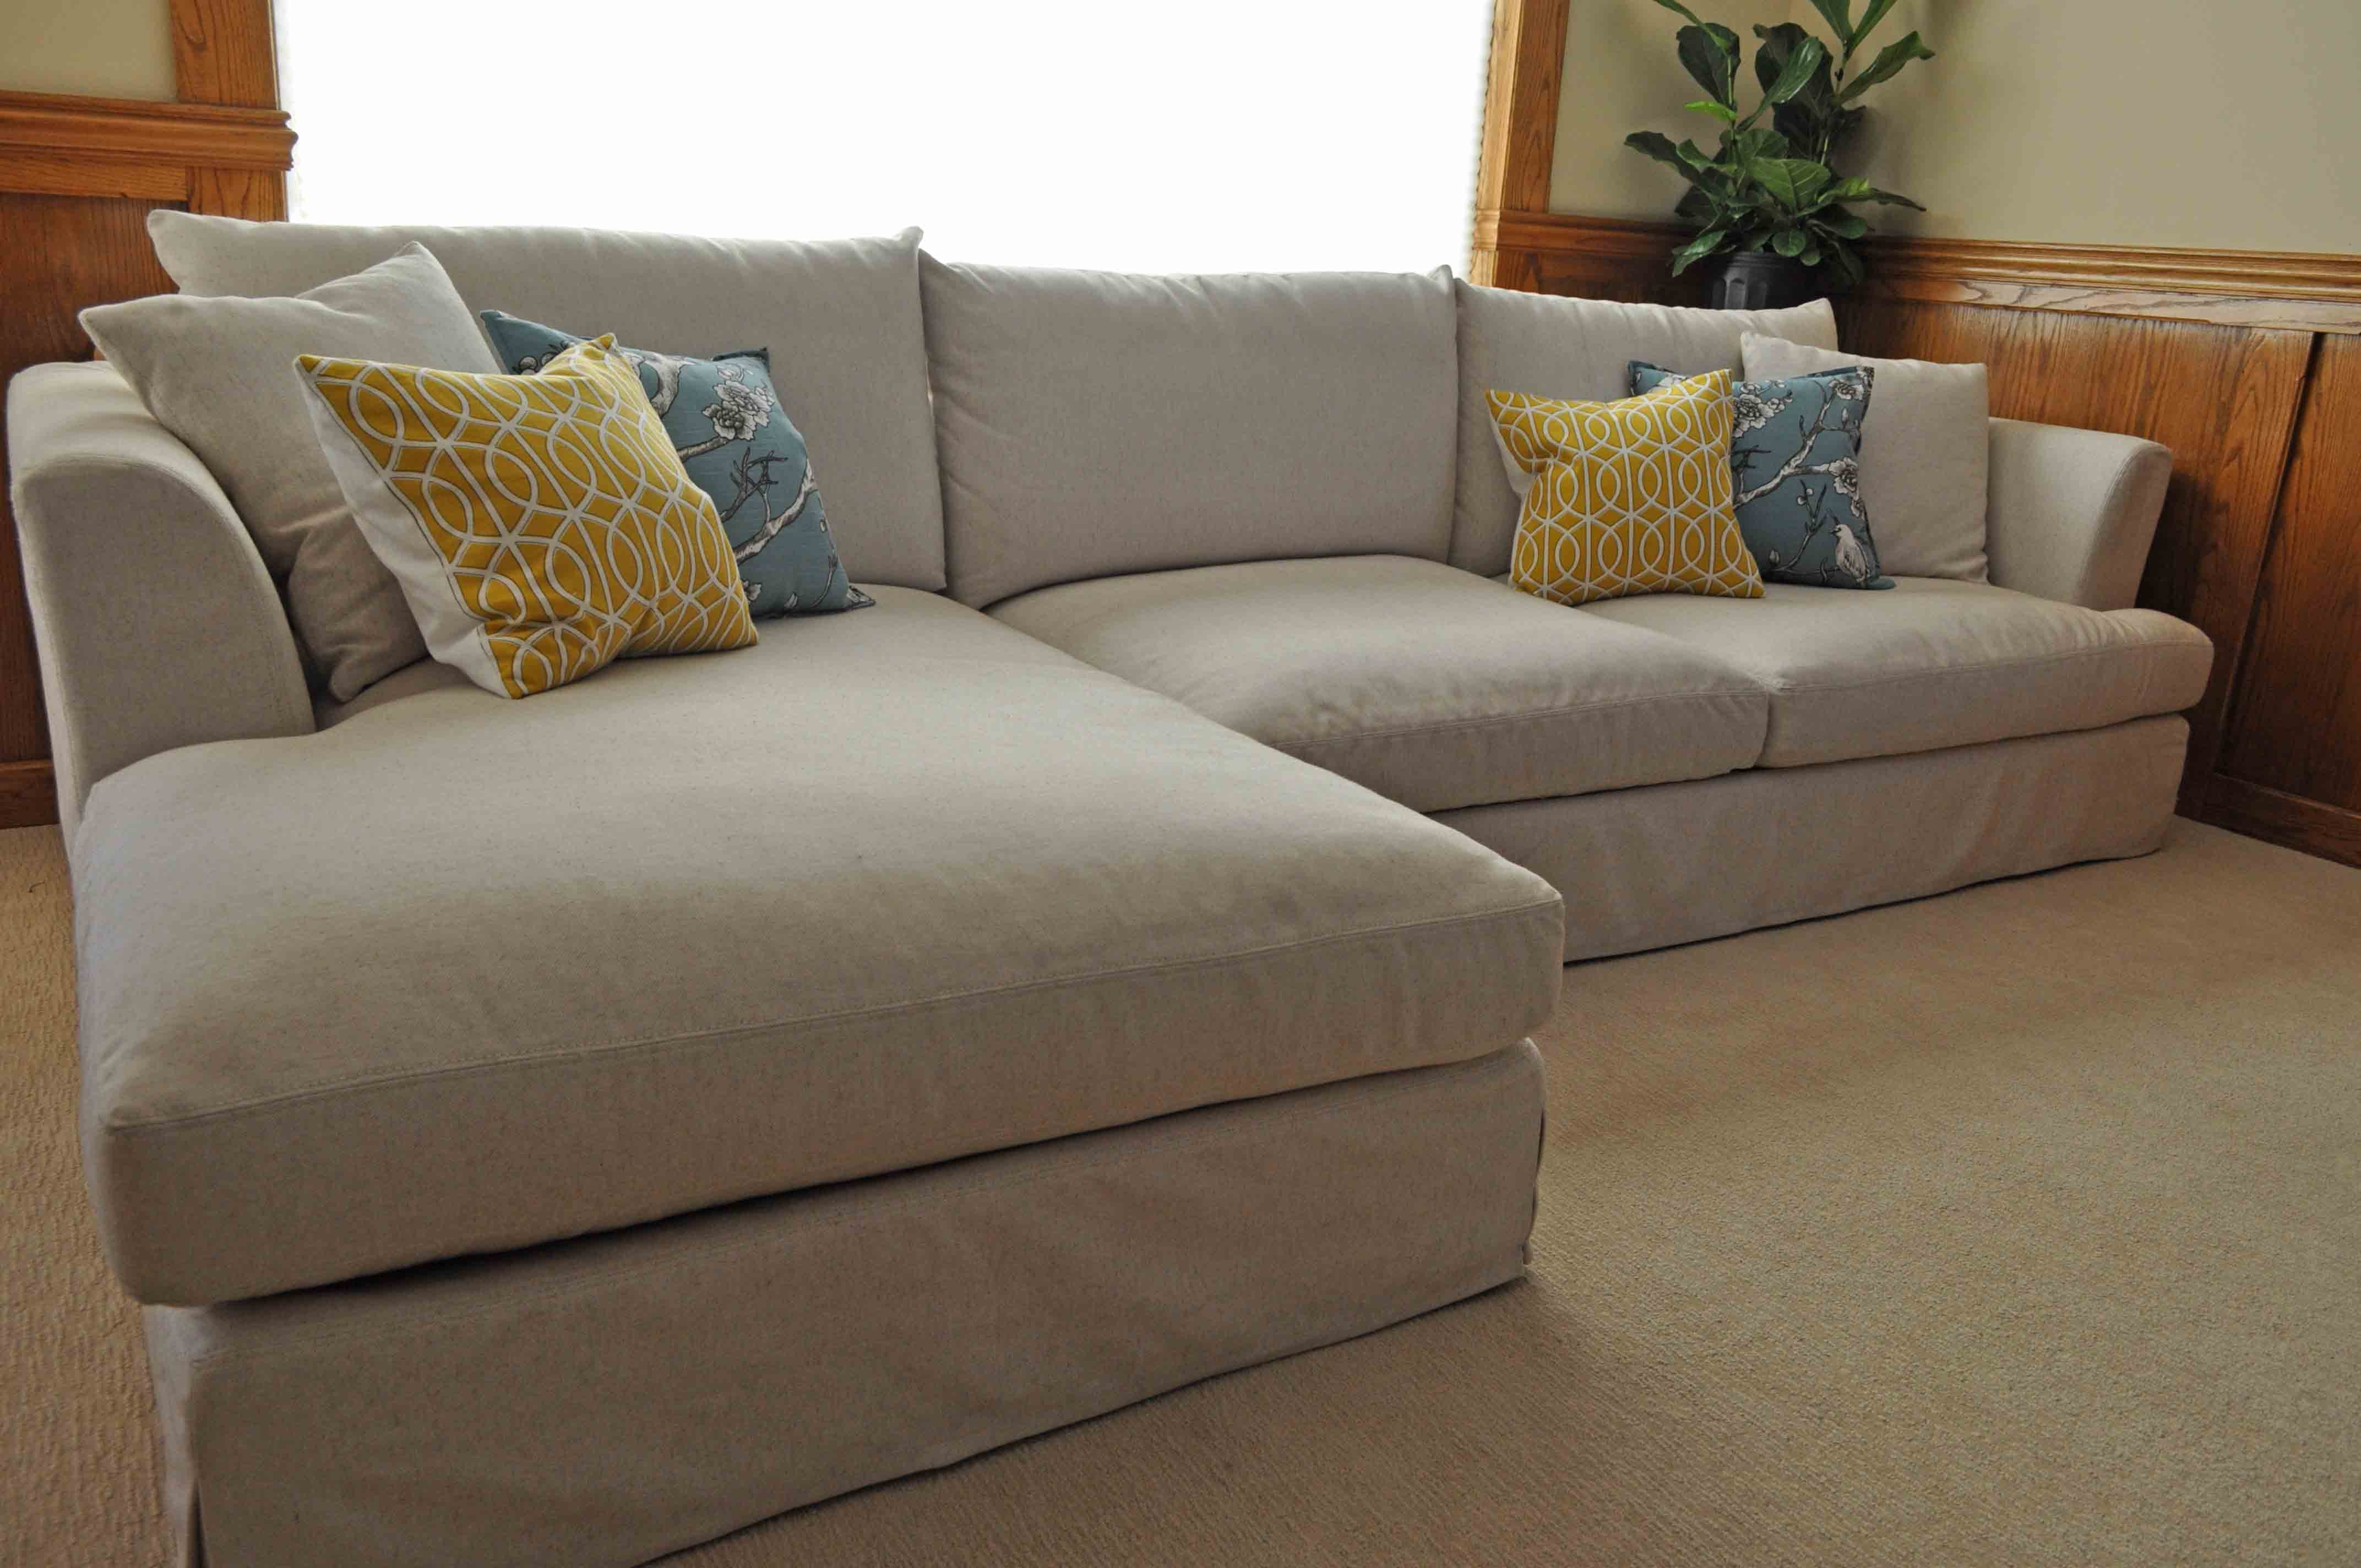 Comfy Sectional Sofas Regarding Preferred Living Room Couch Ideas Large Comfy Sectional Sofas – Surripui (View 4 of 15)